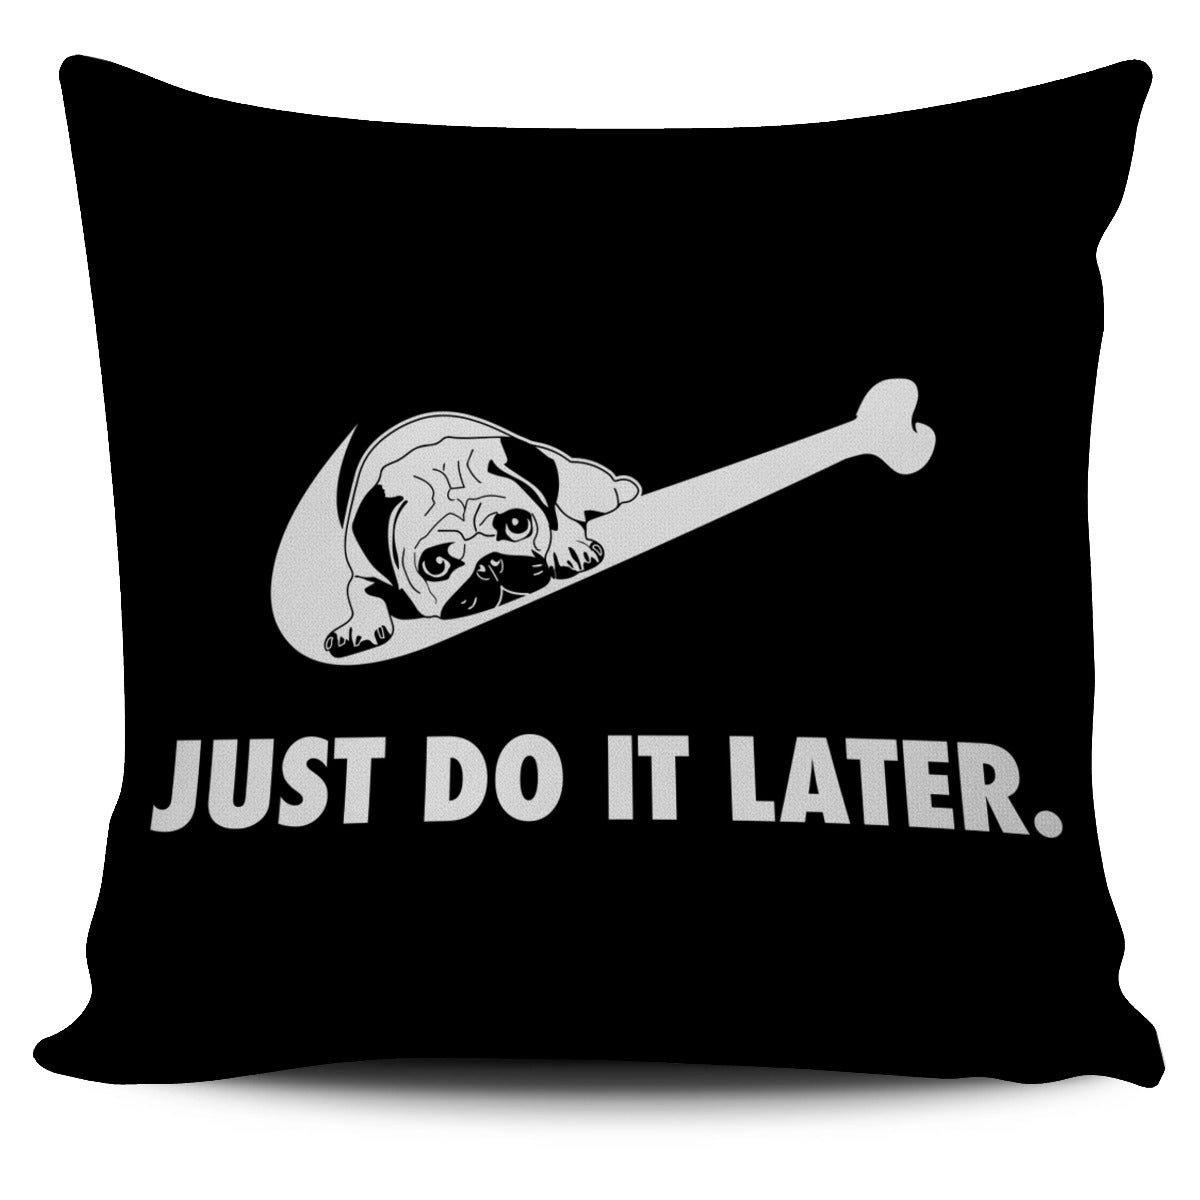 Just Do It Later Pug Pillow Cover